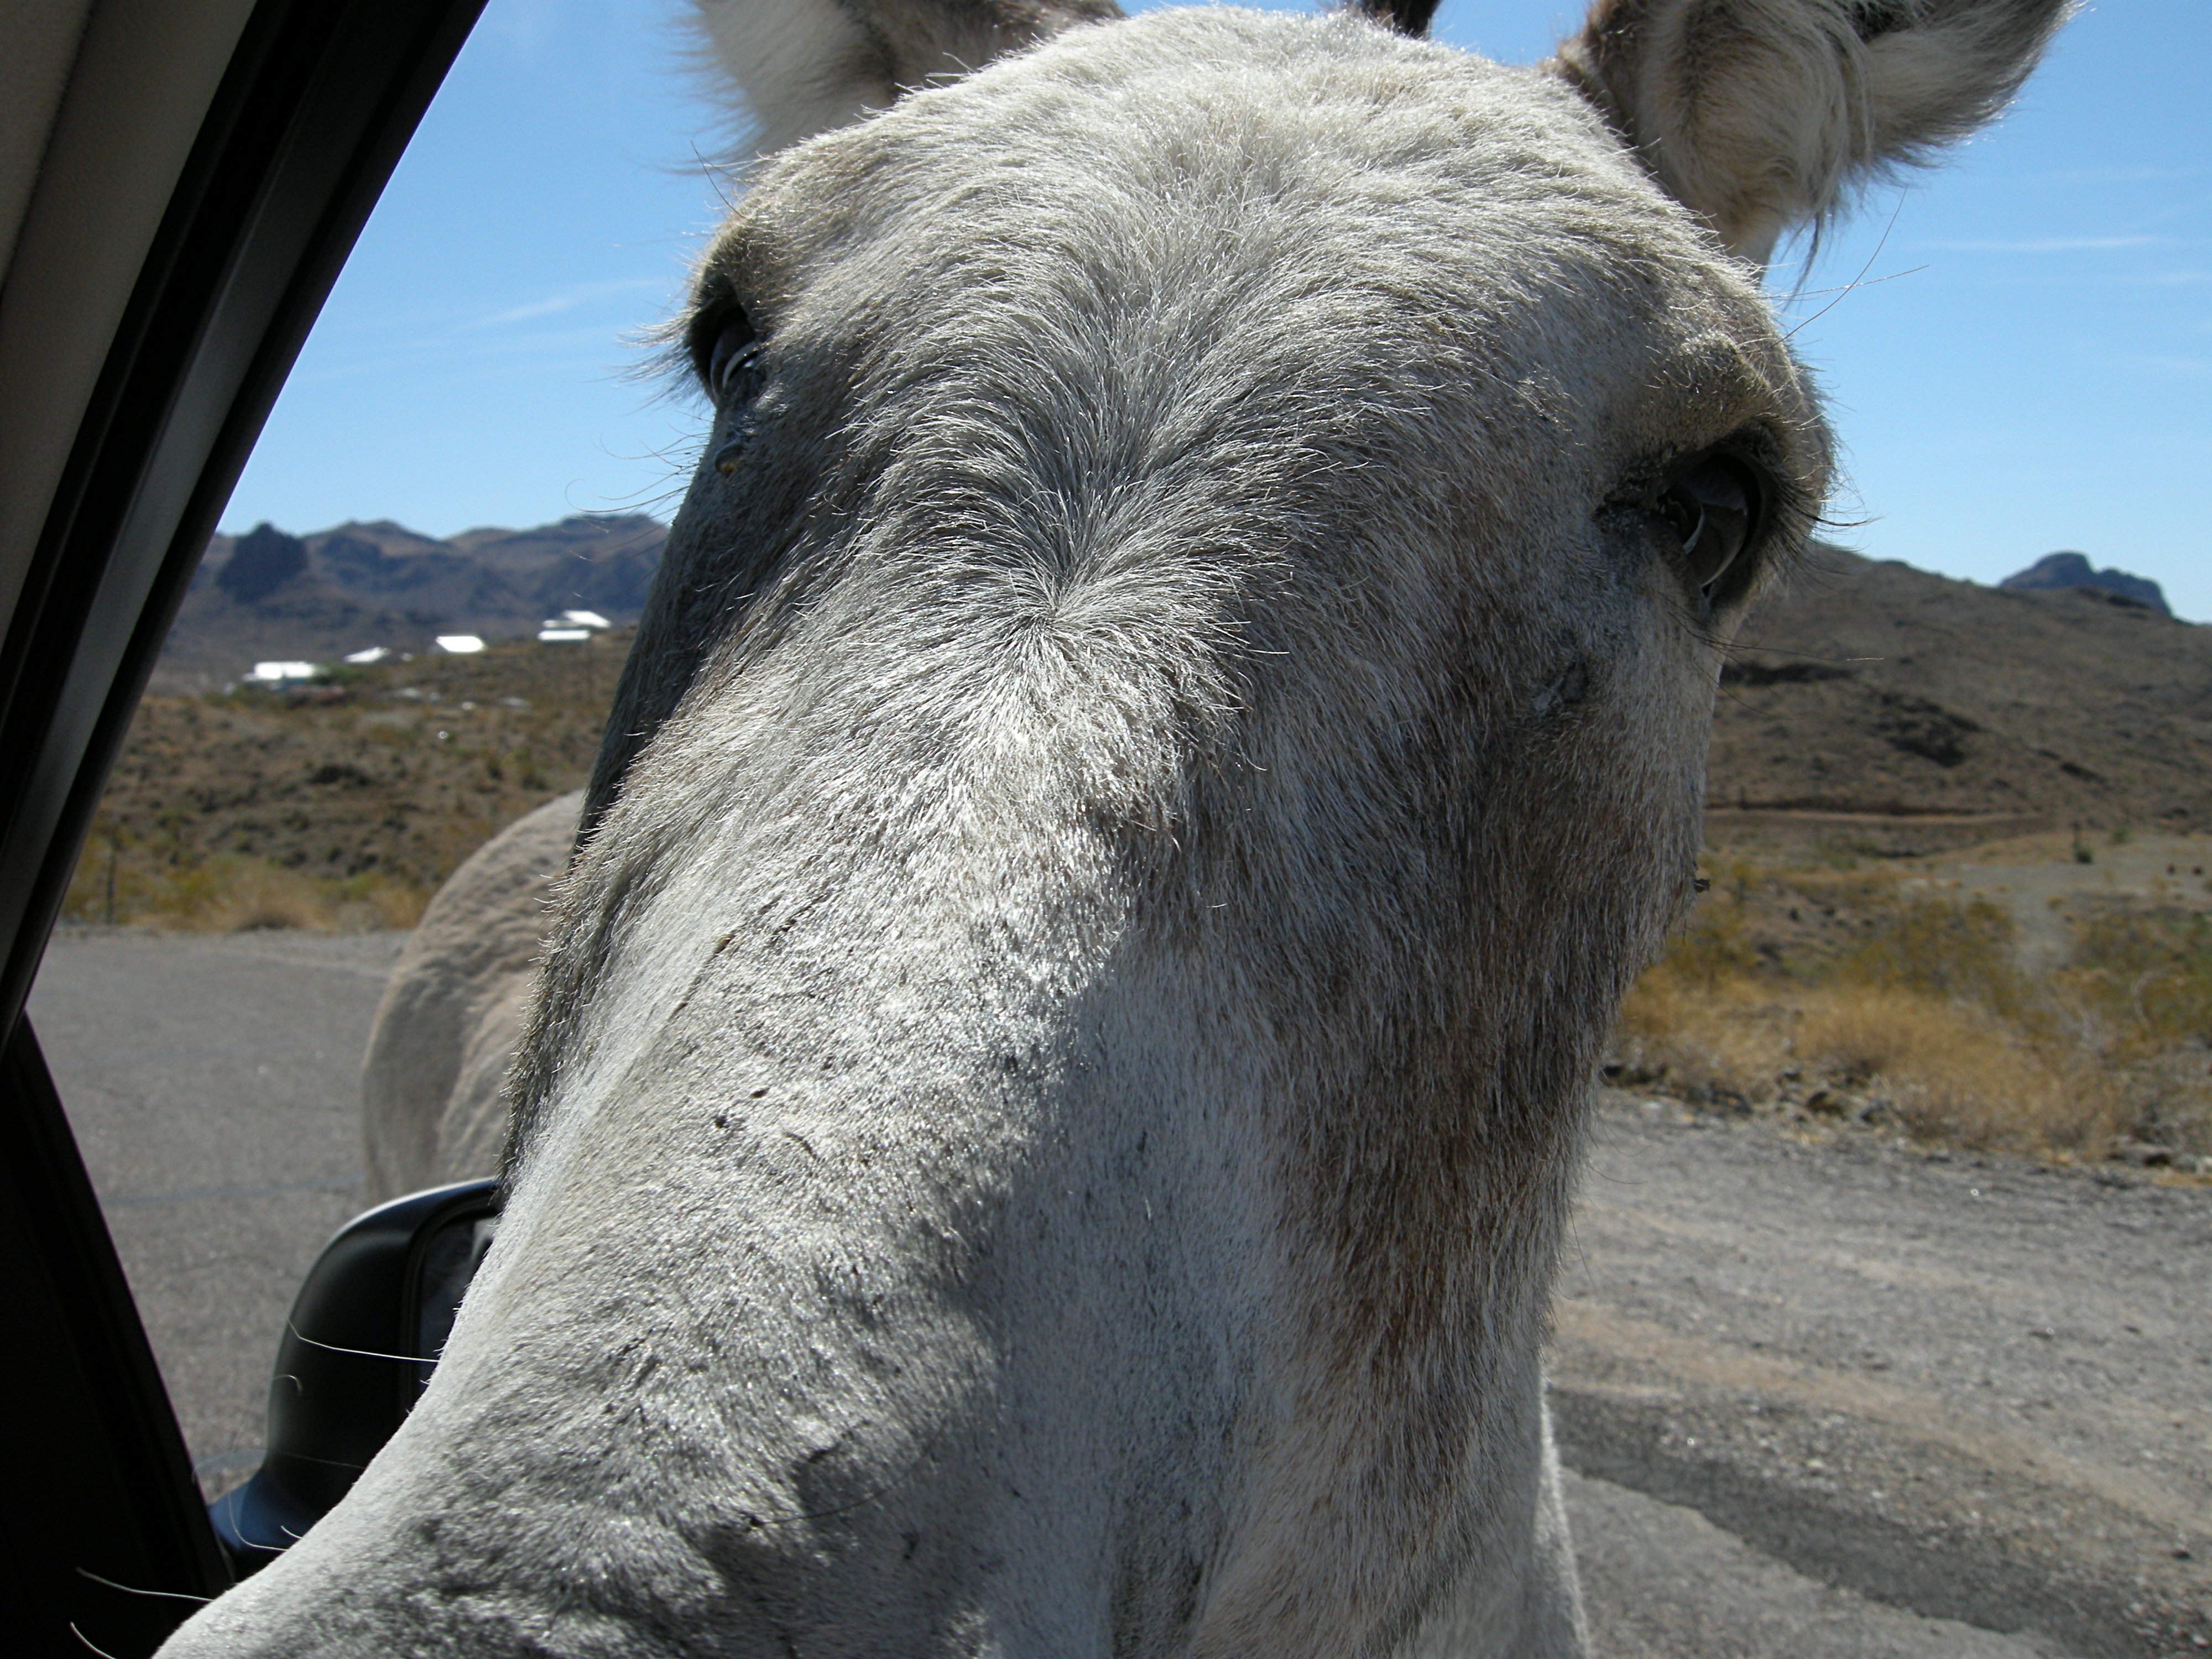 Attempted car jackassing? Nosy Wild Burro!